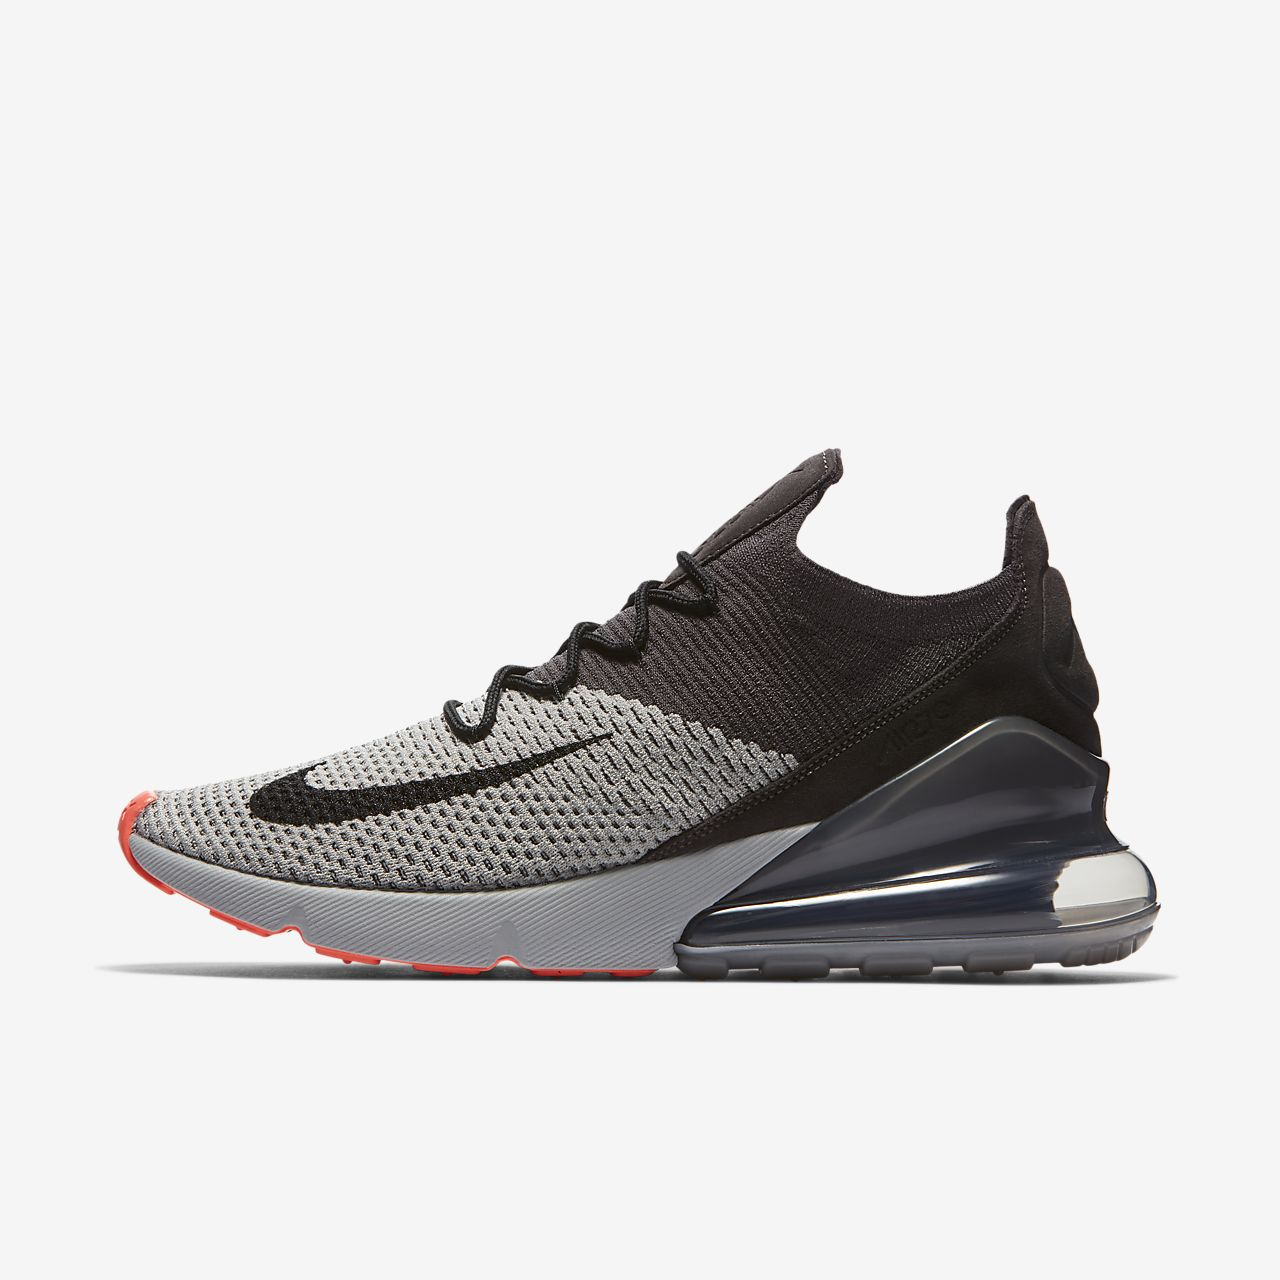 purchase cheap 14c02 3f112 ... Nike Air Max 270 Flyknit Zapatillas - Hombre